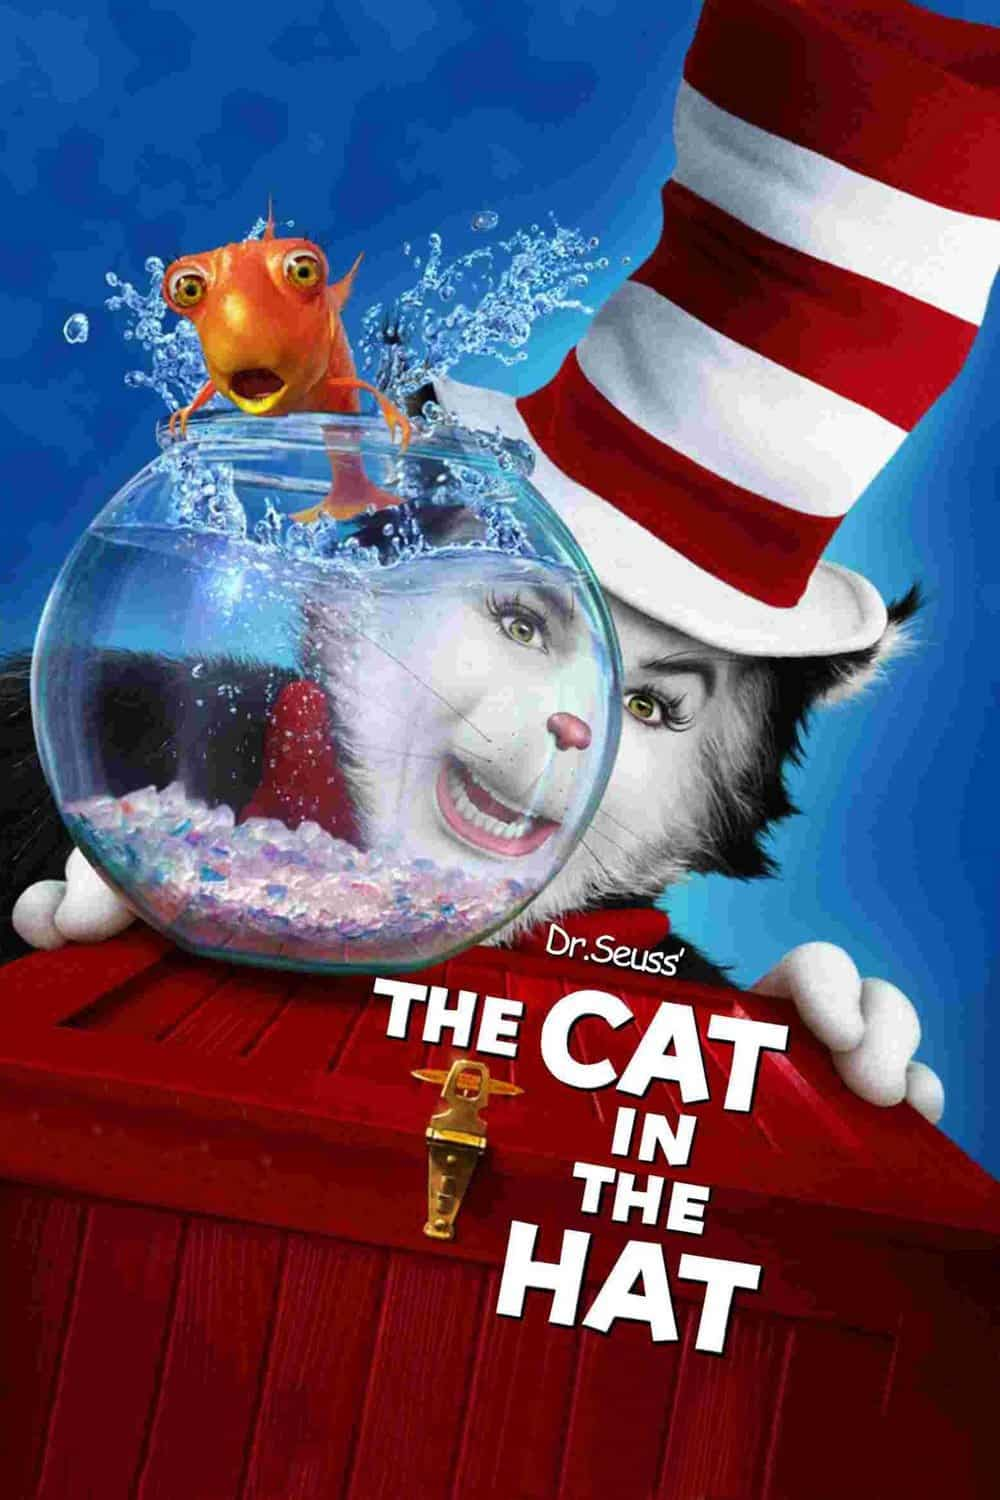 The Cat in the Hat, 2003